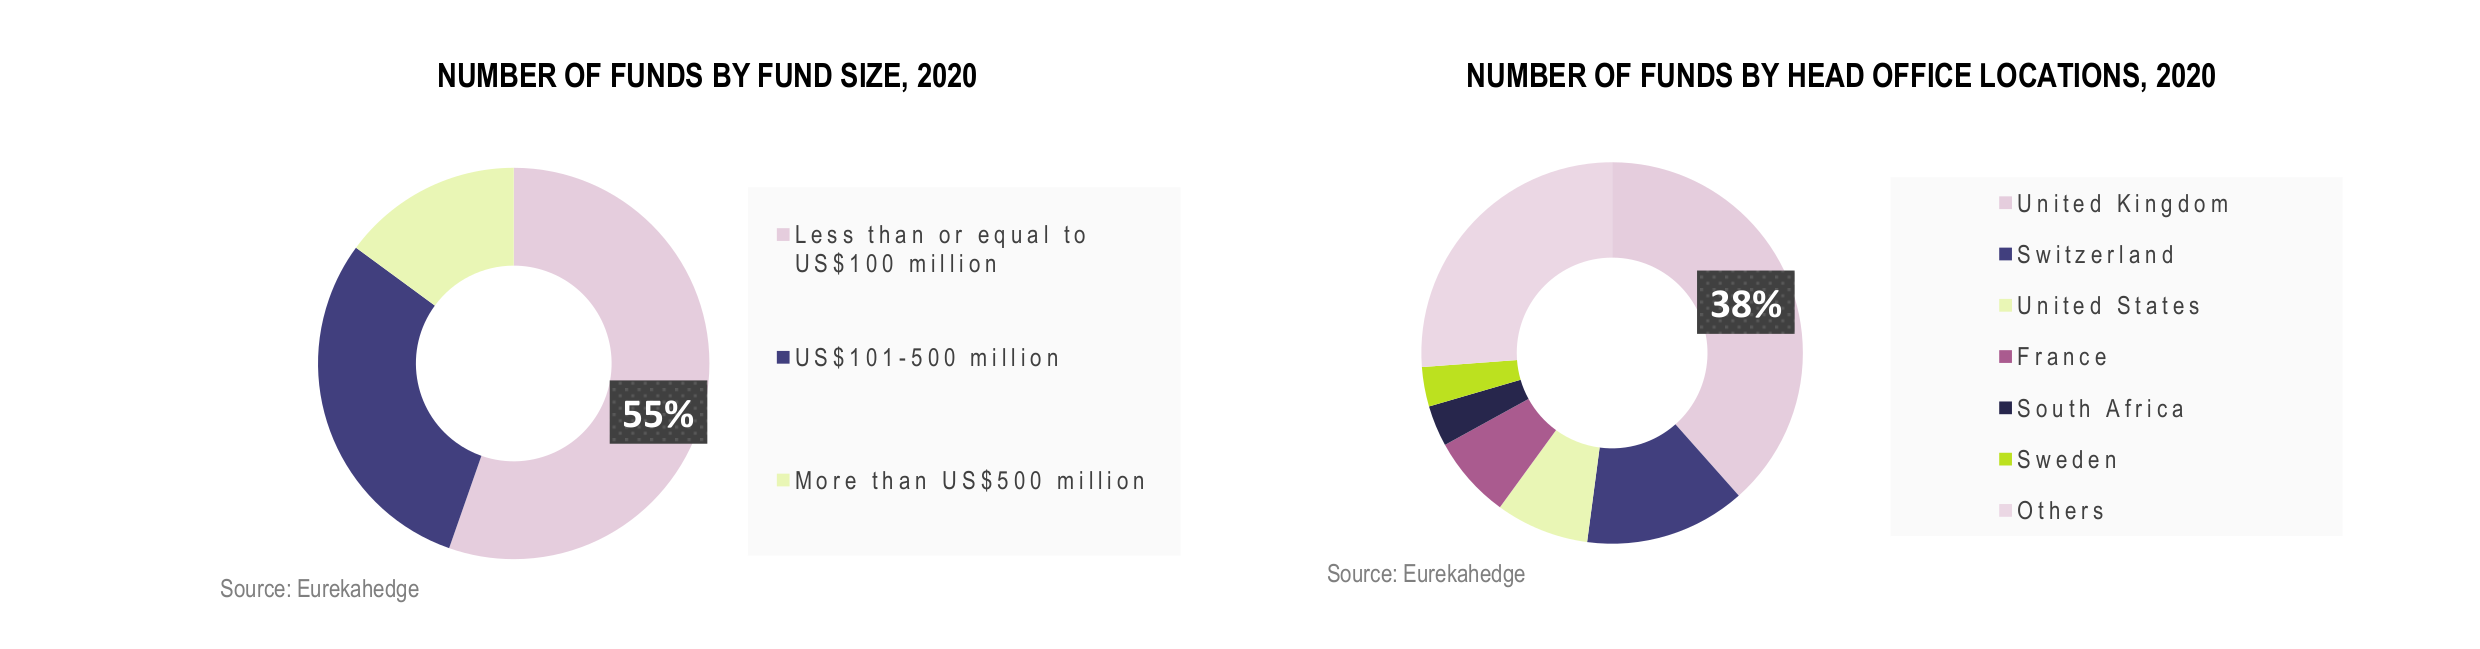 European Hedge Funds Infographic December 2020 - number of funds by fund size and head office